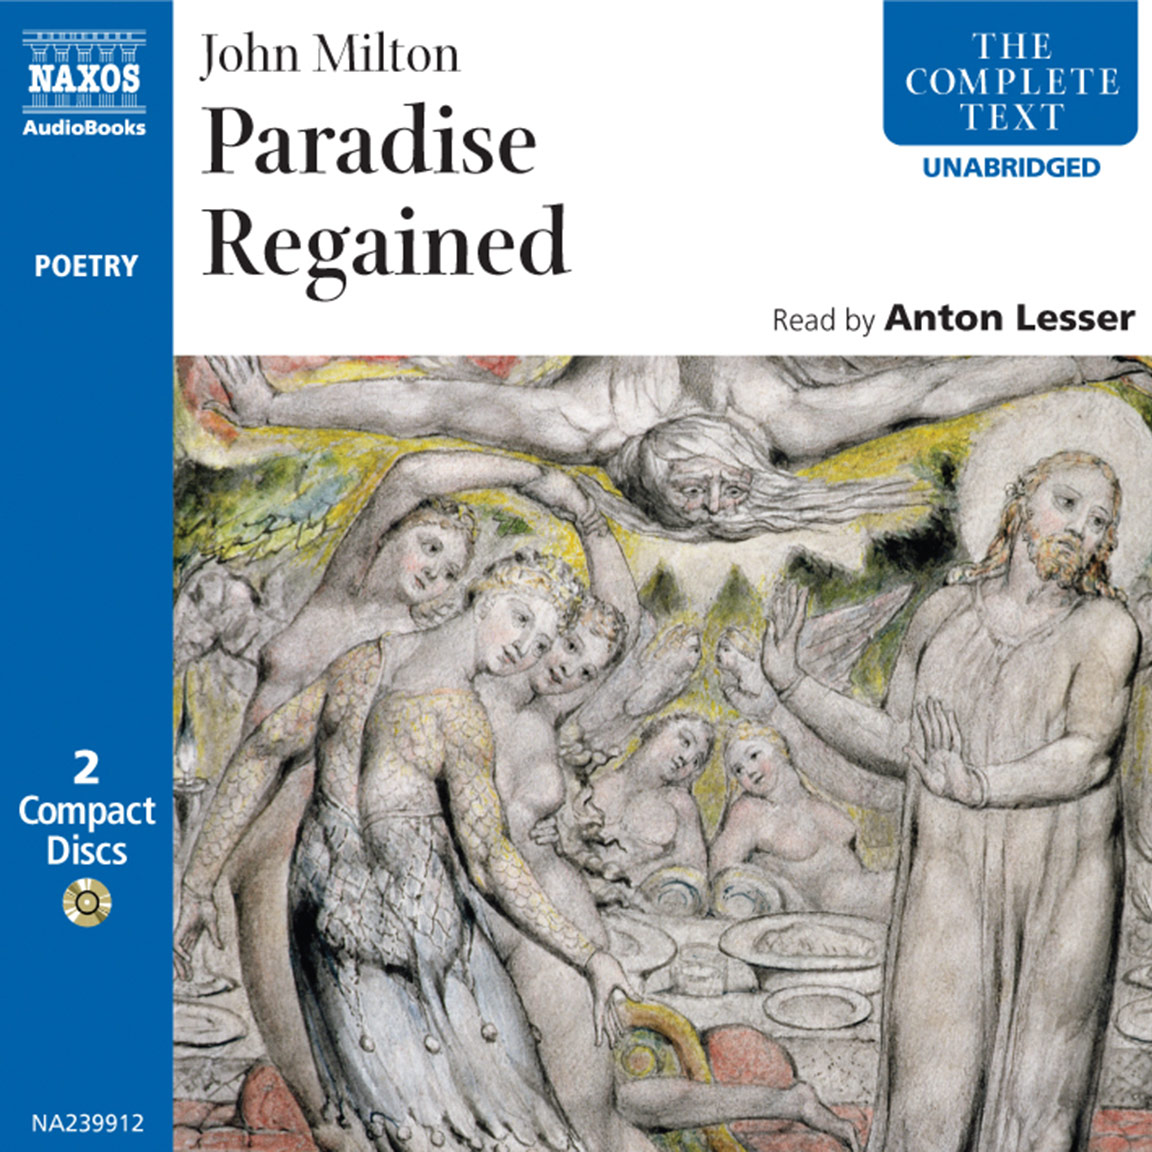 Paradise Regained (unabridged)